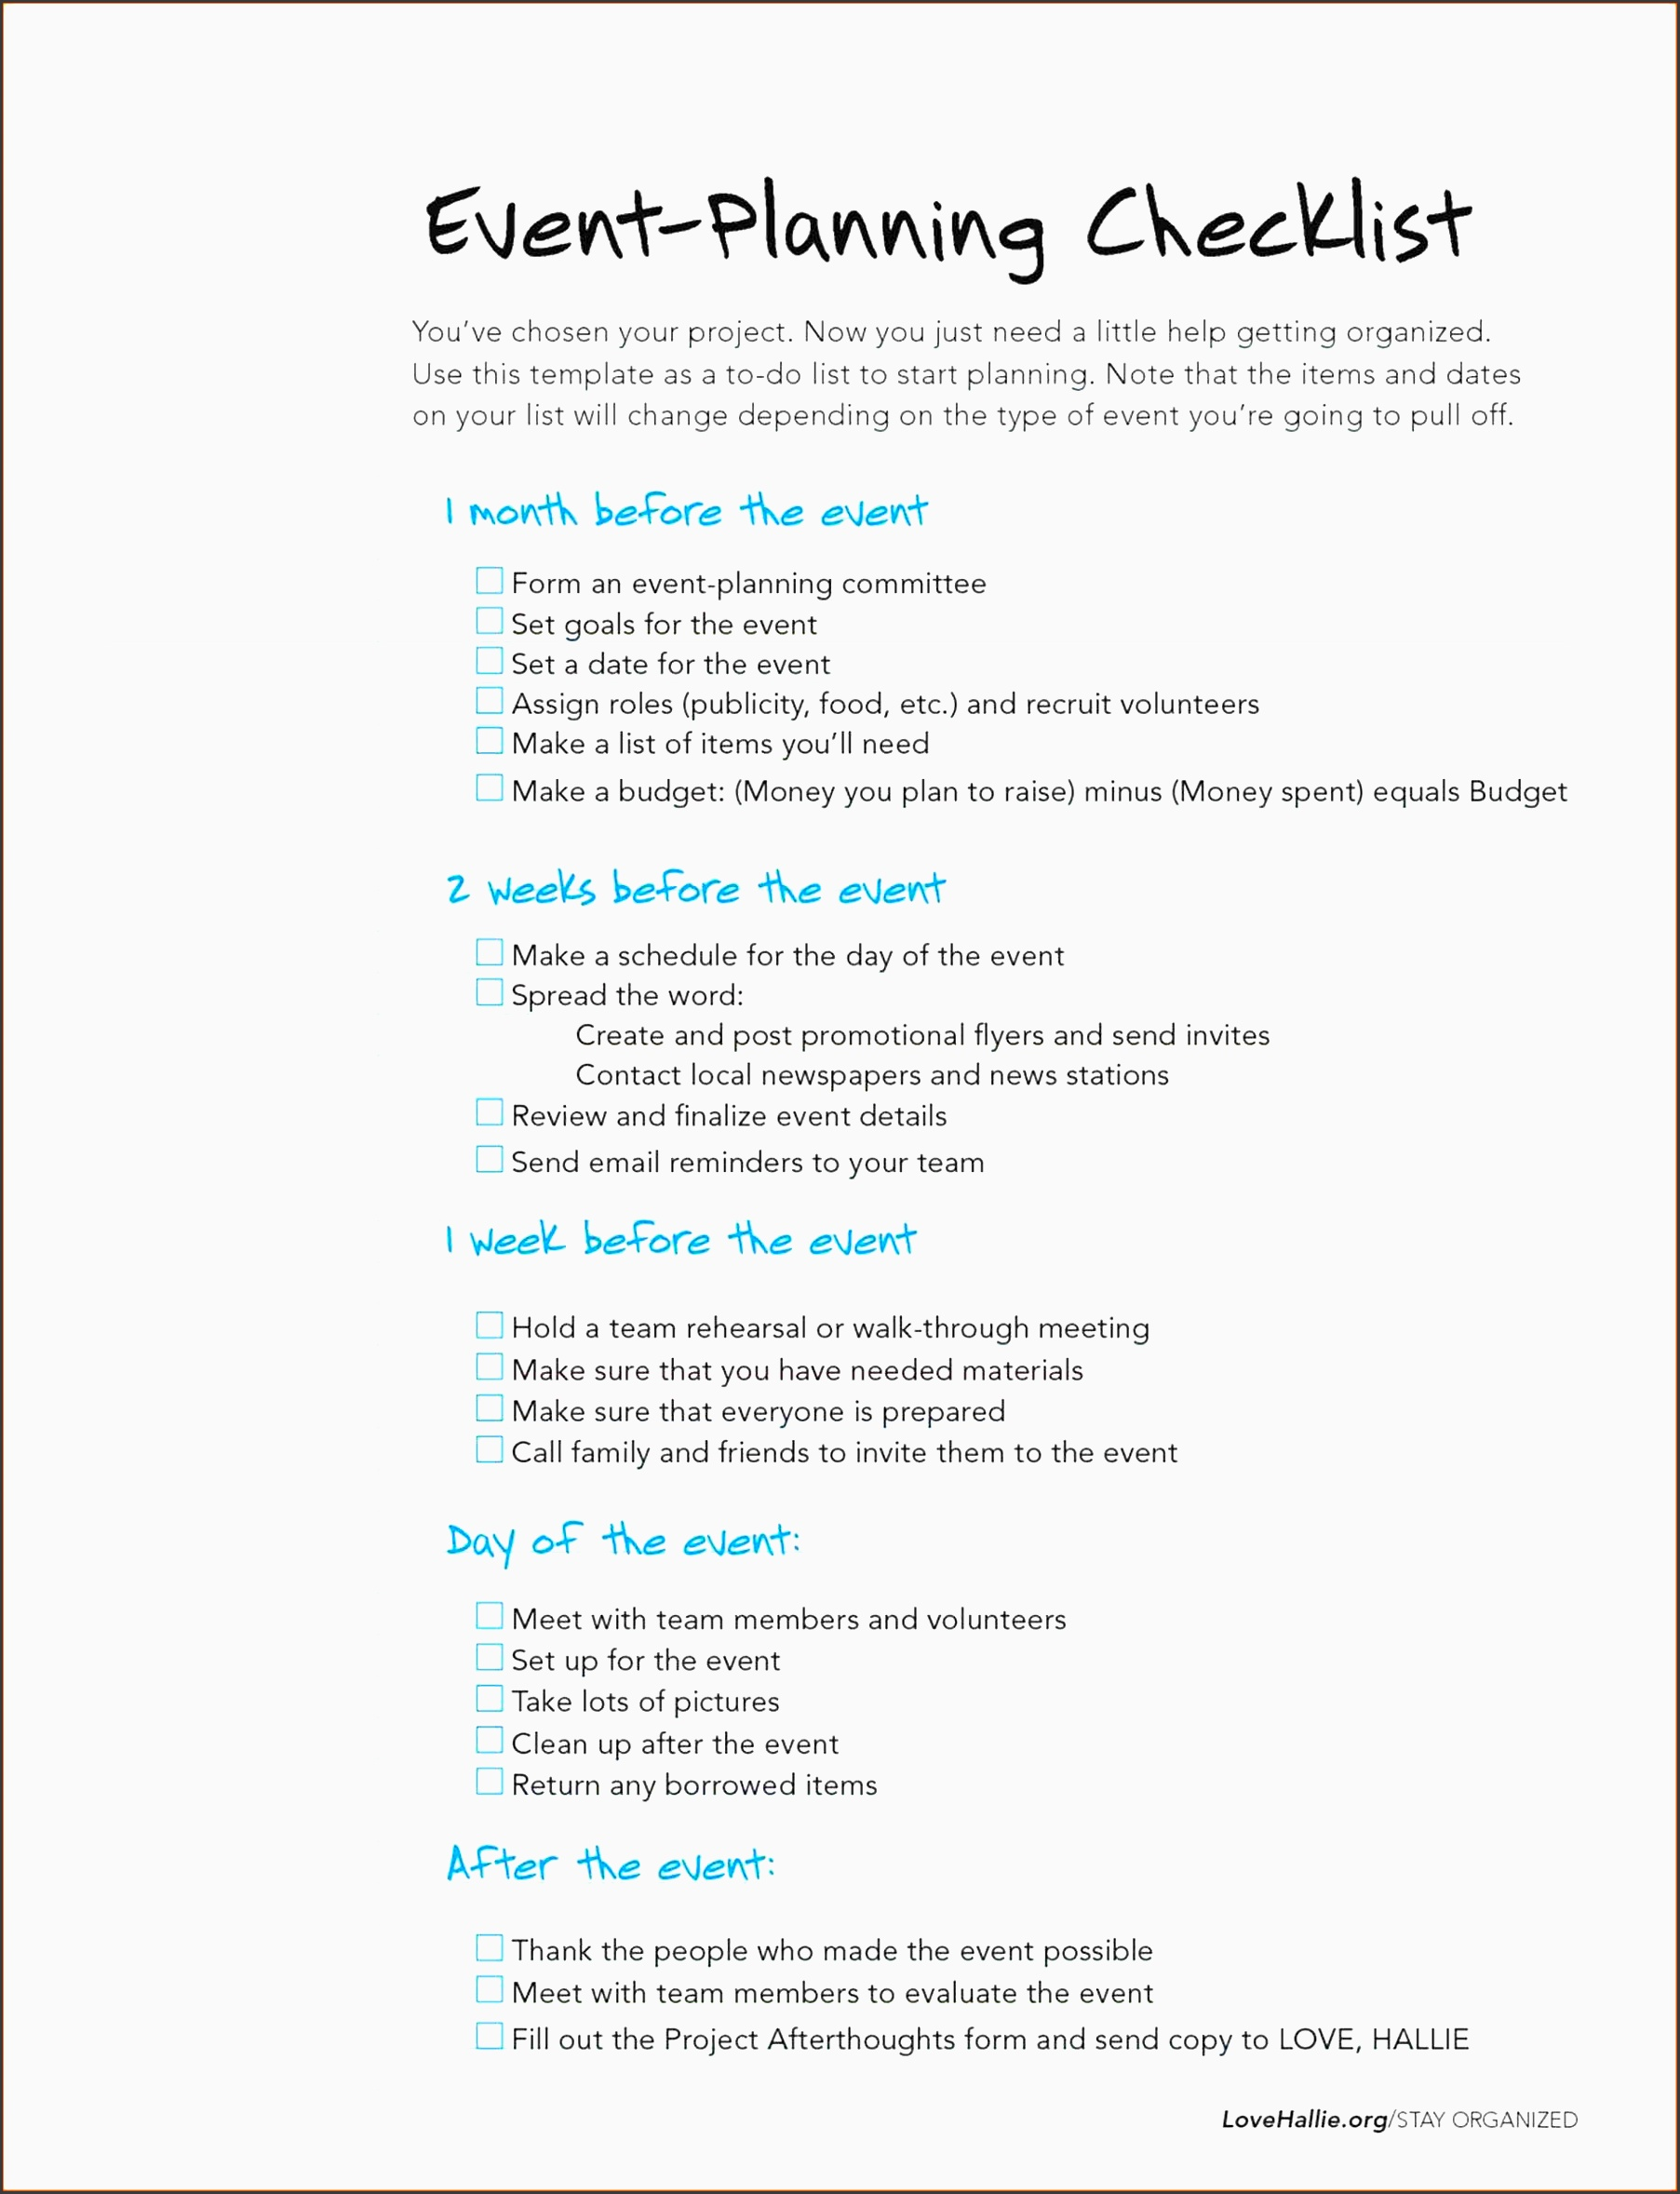 event checklist template word event planning format u template planner bookletemplateorg event event checklist template word